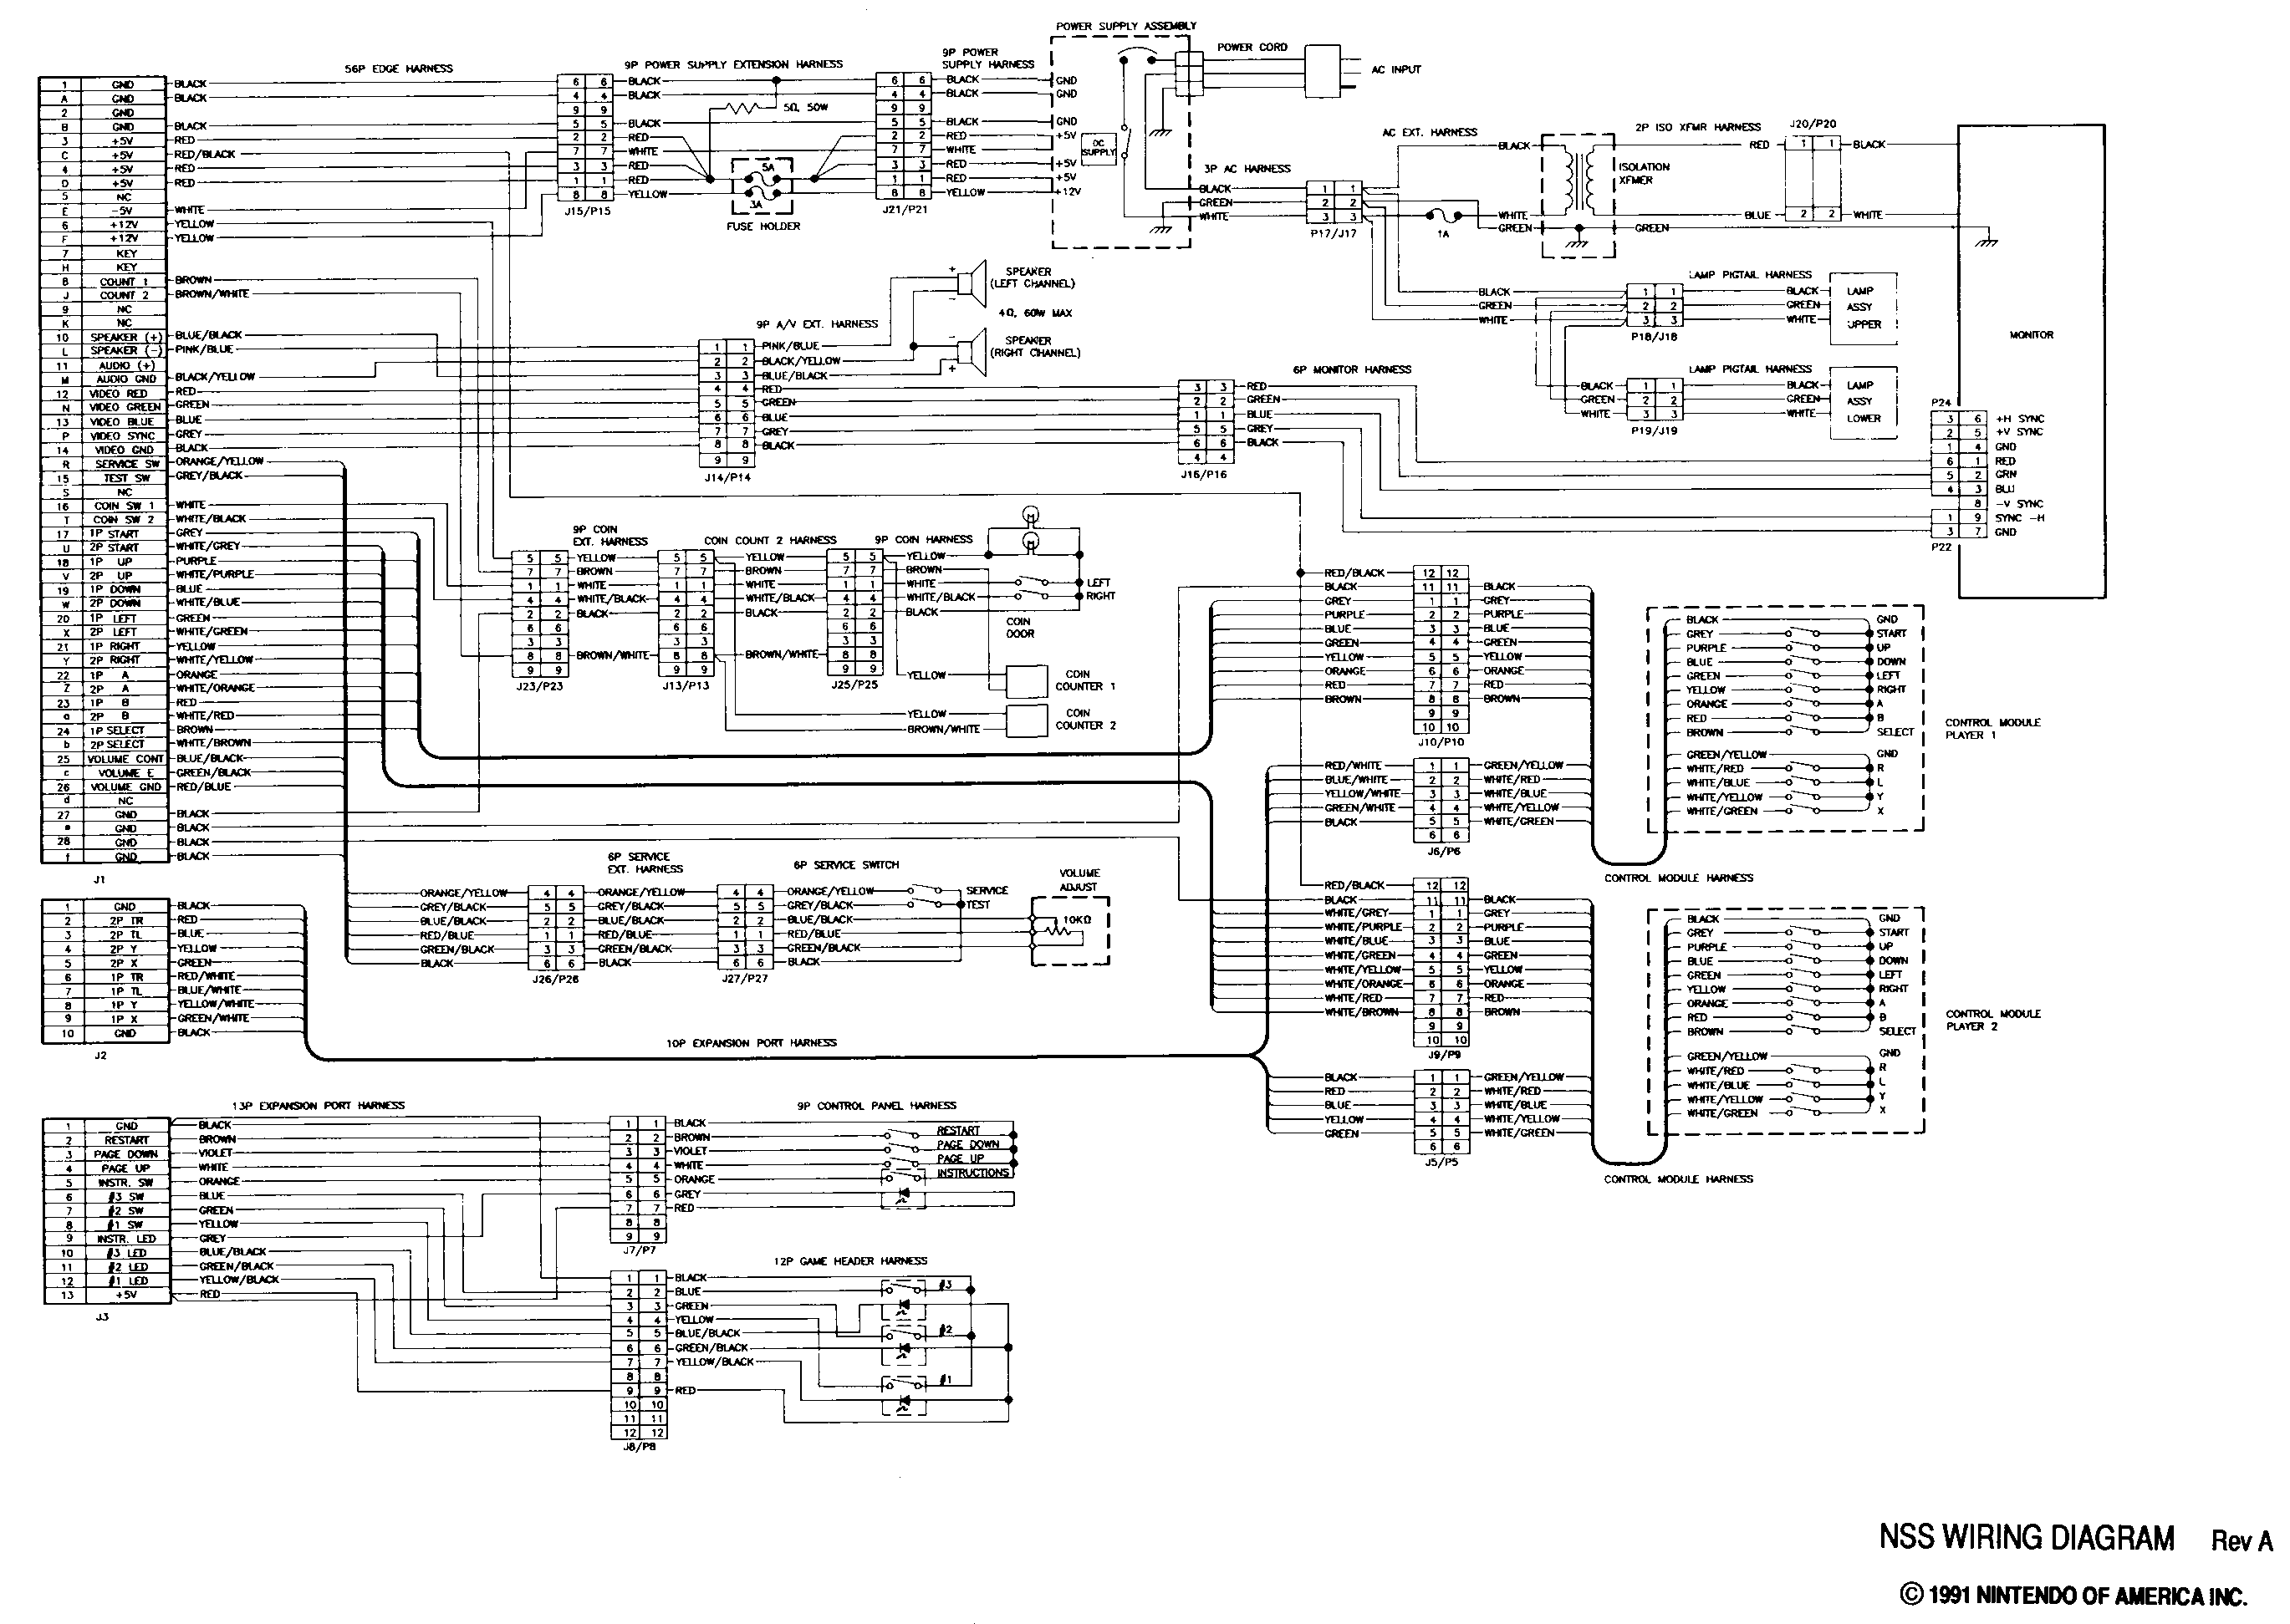 arcade game wiring diagram arcade control panel wiring diagram found: nss schematic - klov/vaps coin-op videogame ...